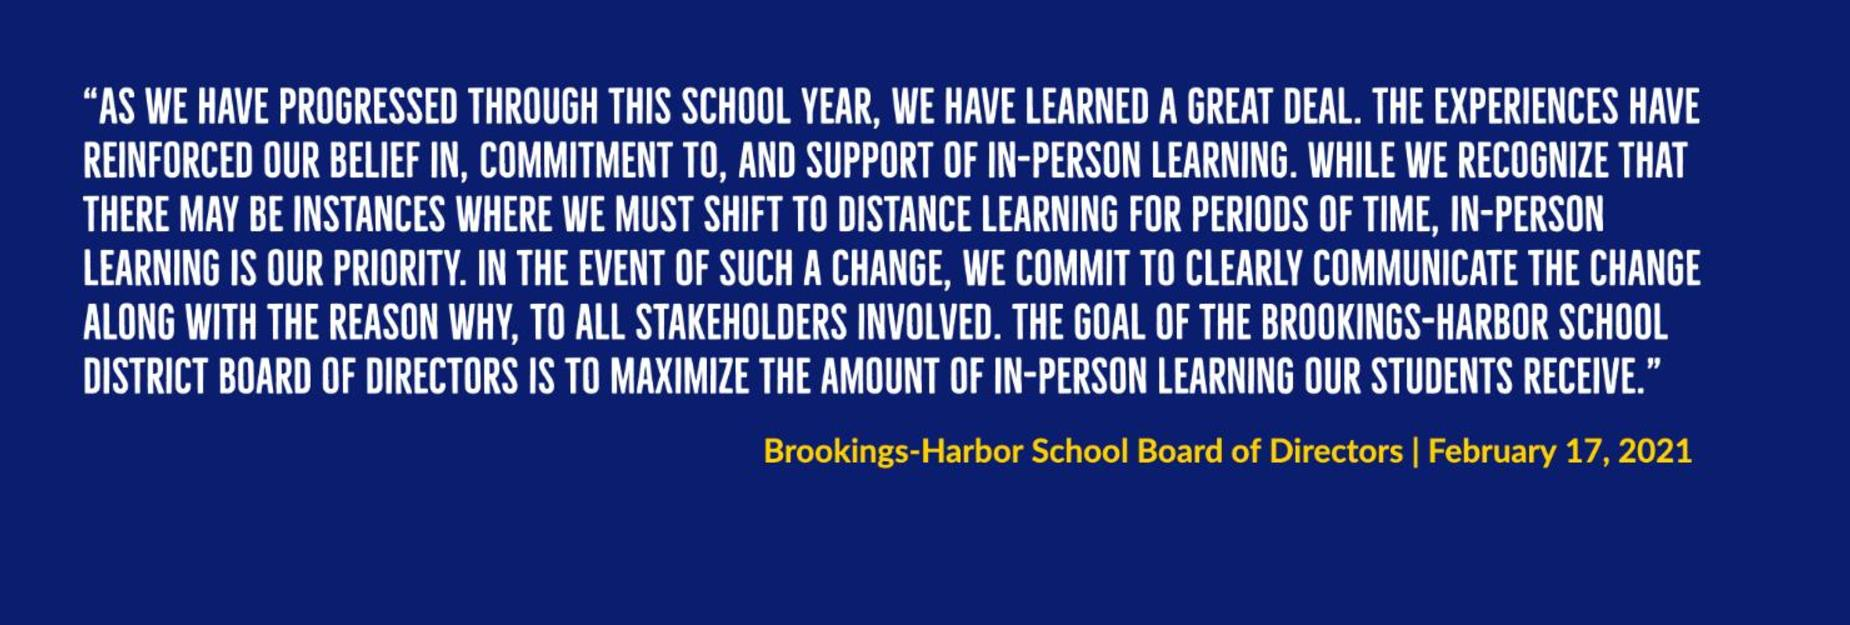 school board statement feb 2021